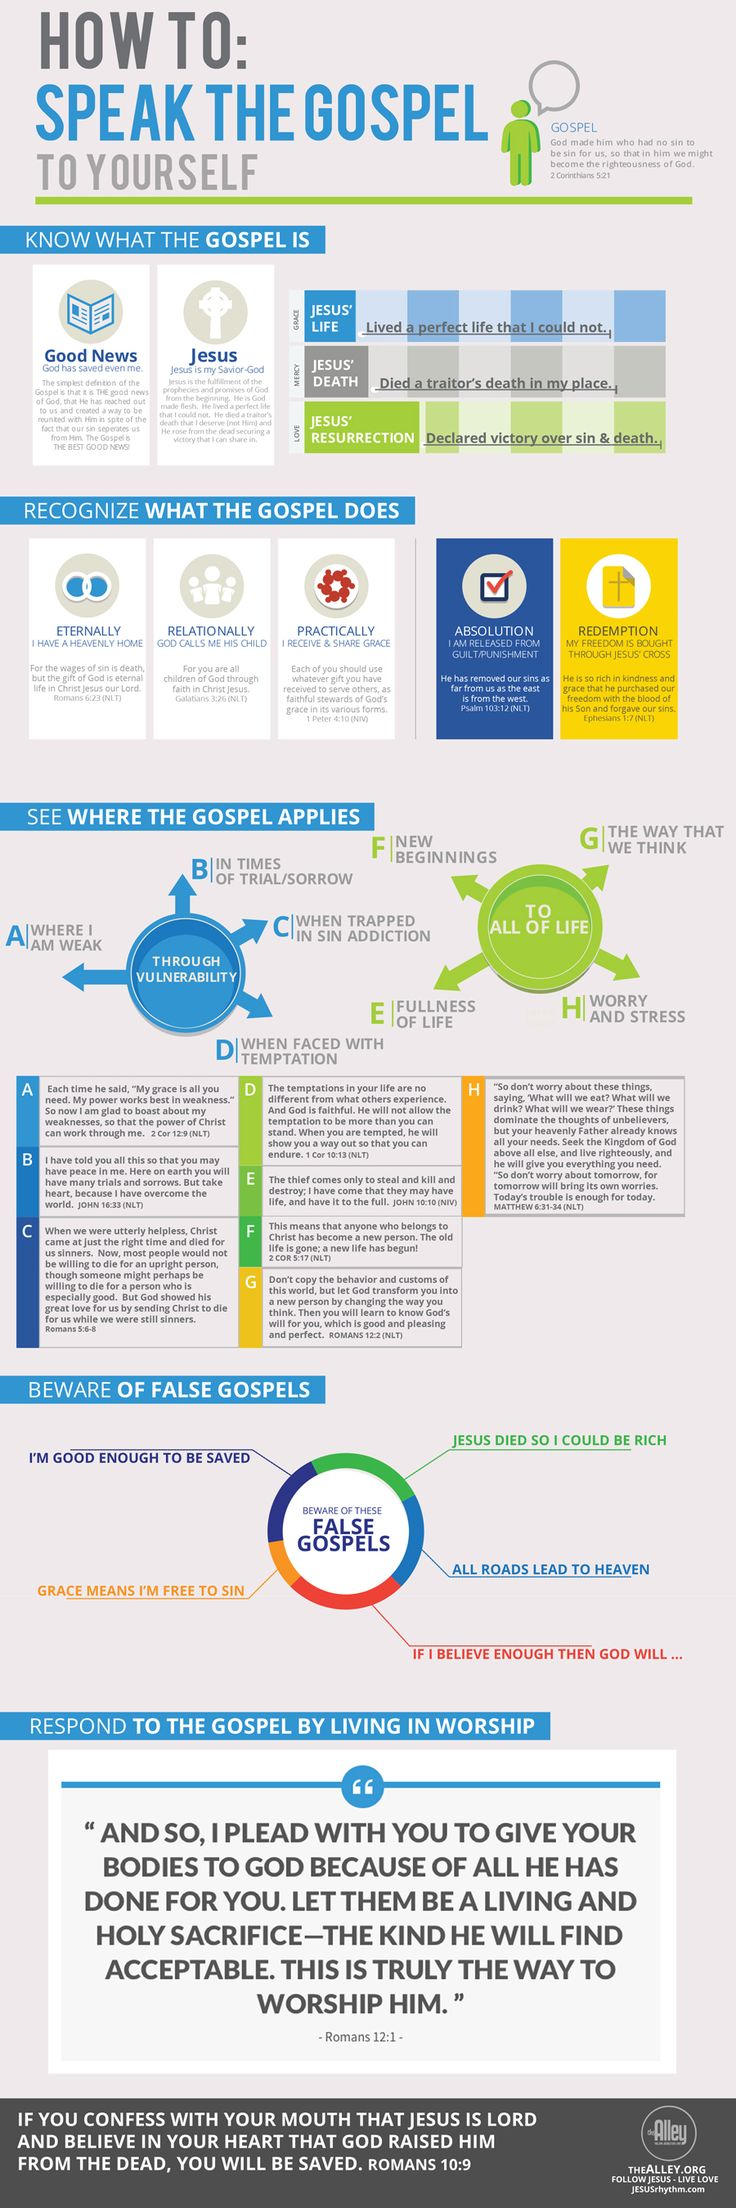 http://www.jesusrhythm.com/wp-content/uploads/2014/01/how-to-speak-gospel-infographic-900.jpg